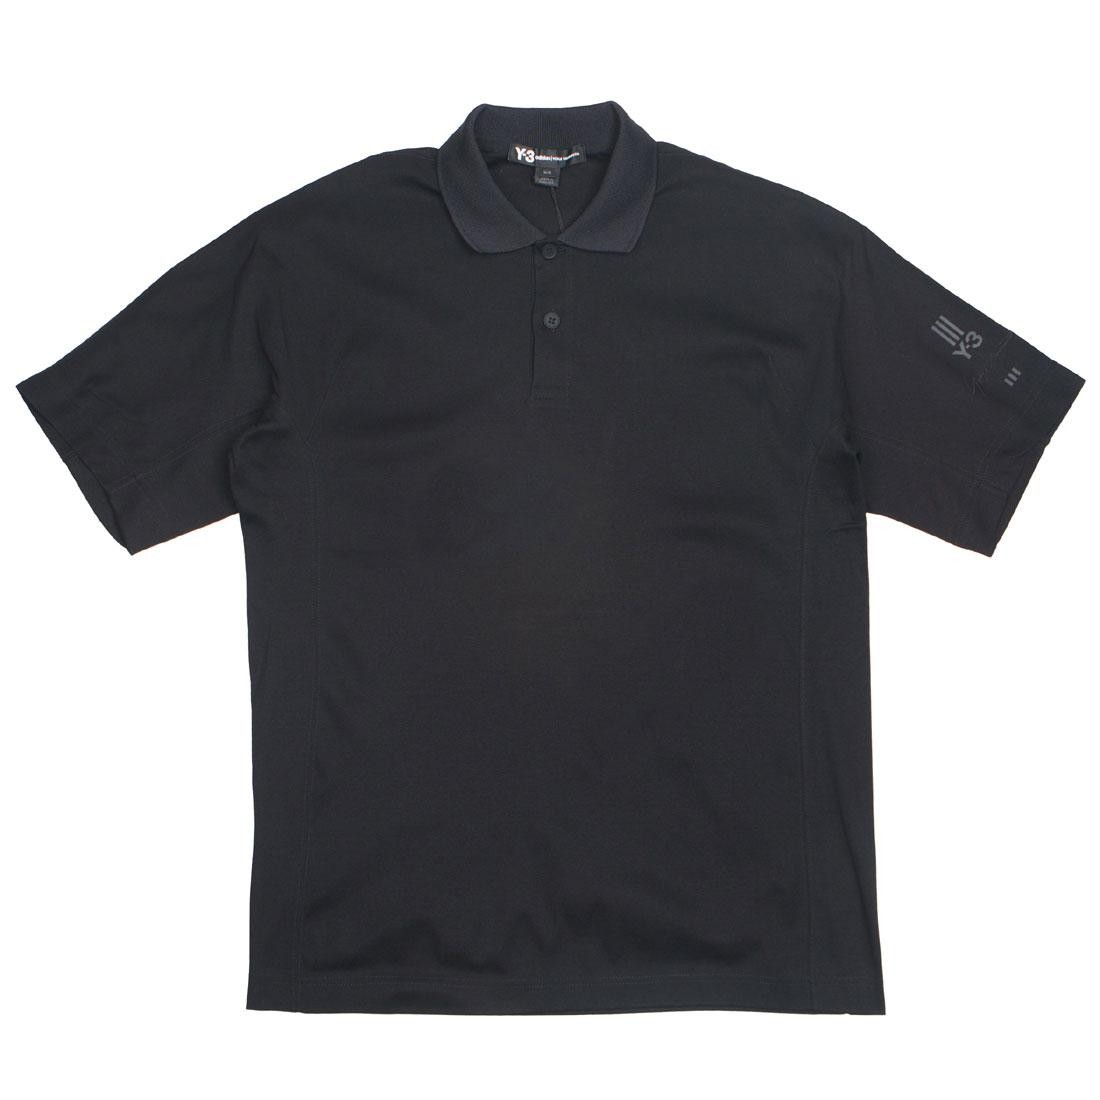 Adidas Y-3 Men New Classic Polo (black)